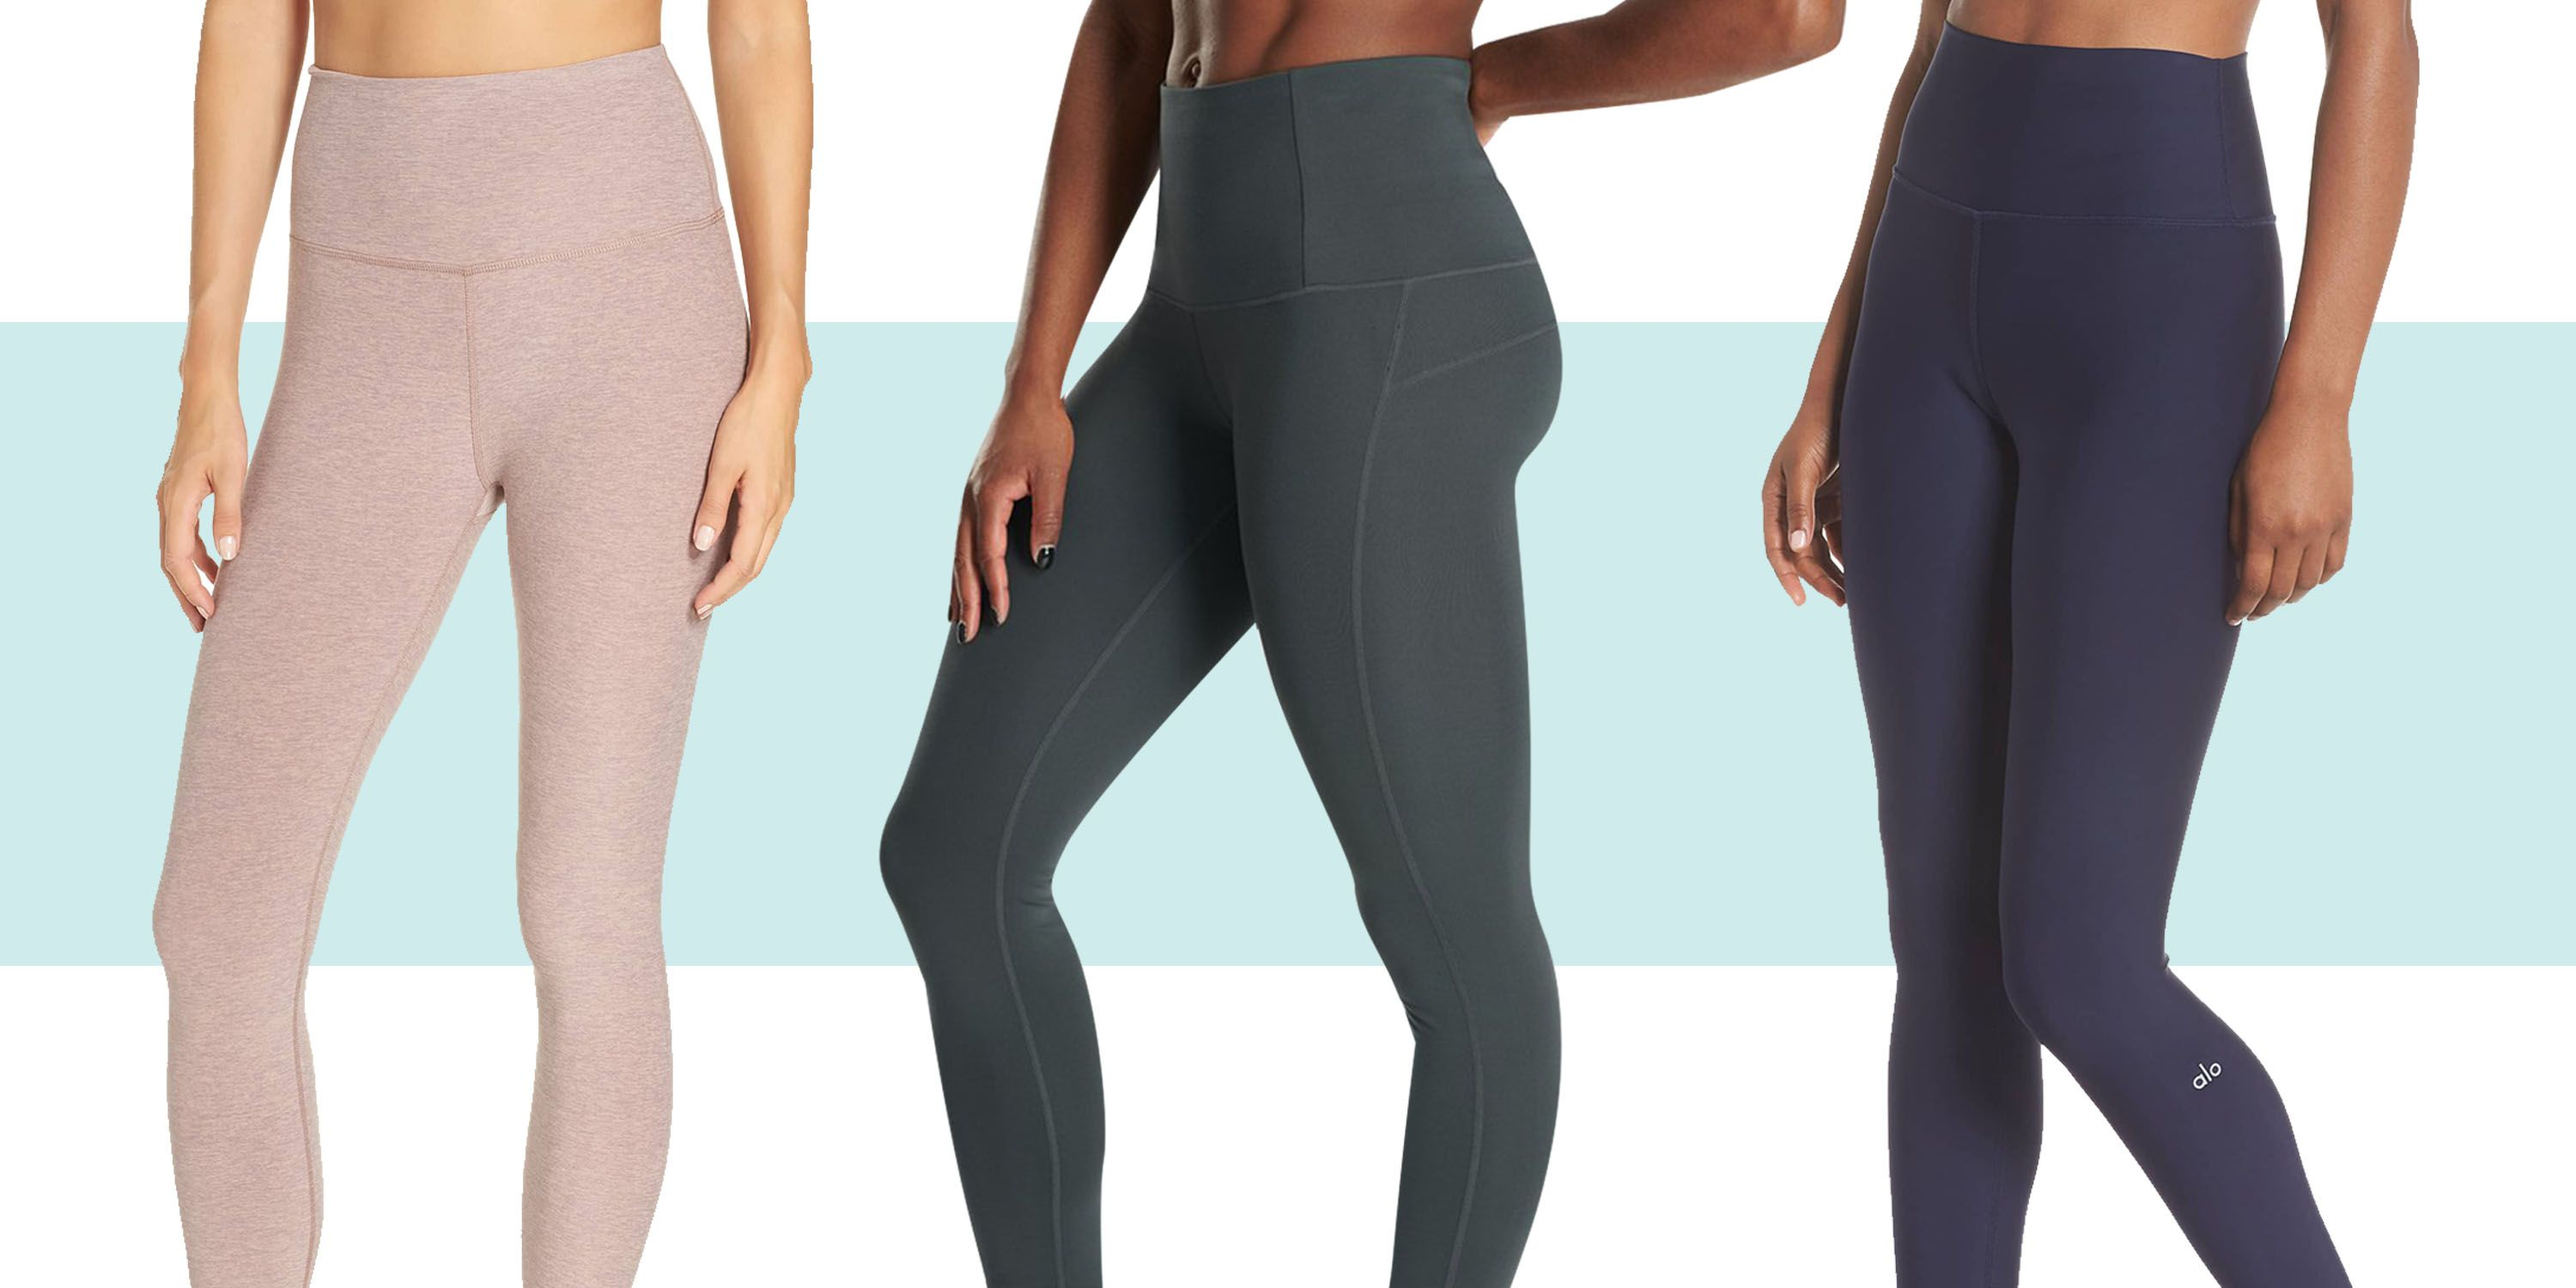 The Best High-Waisted Leggings for Every Workout, According to Trainers